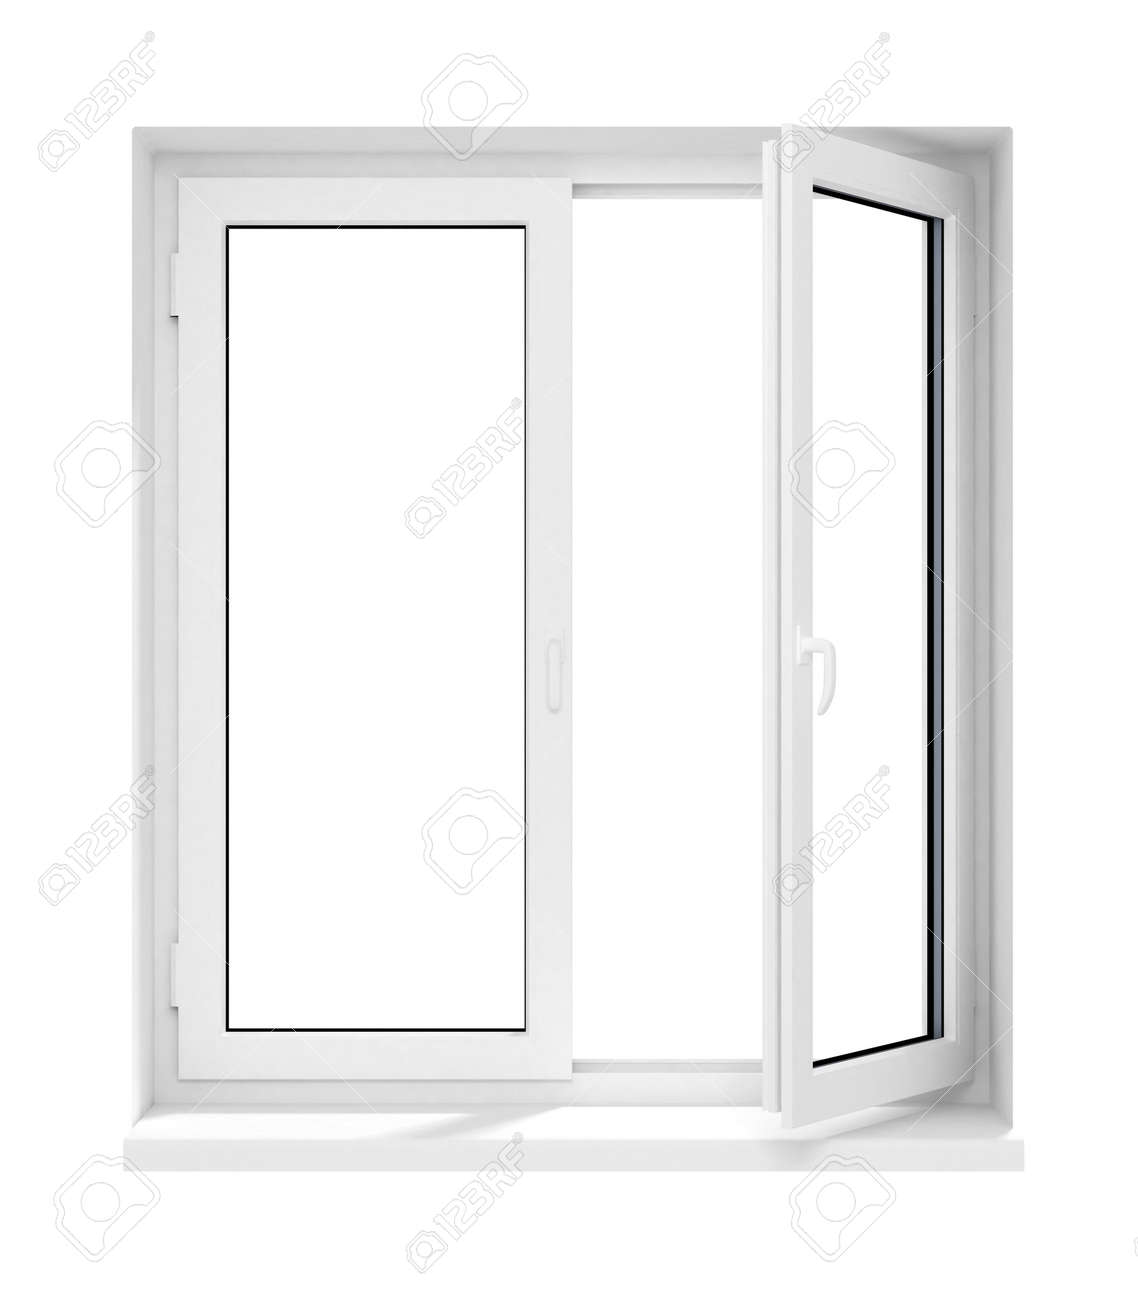 White window frame - Illustration New Opened Plastic Glass Window Frame Isolated On The White Background 3d Model Illustration